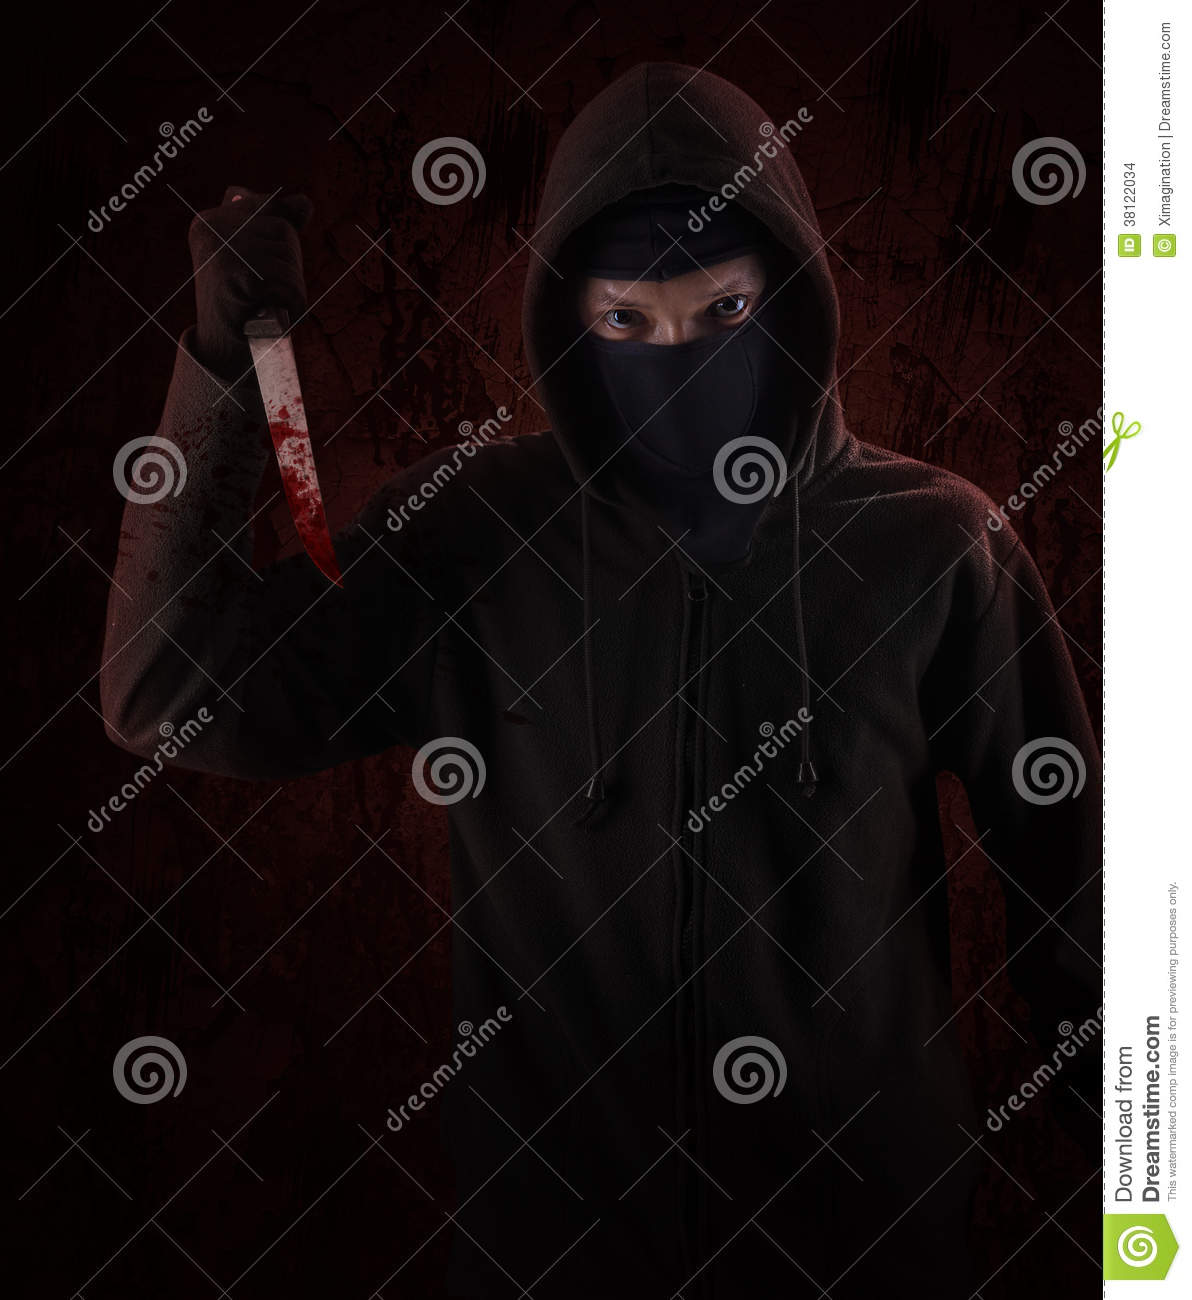 Dangerous Hooded Man Stock Images - Image: 38122034